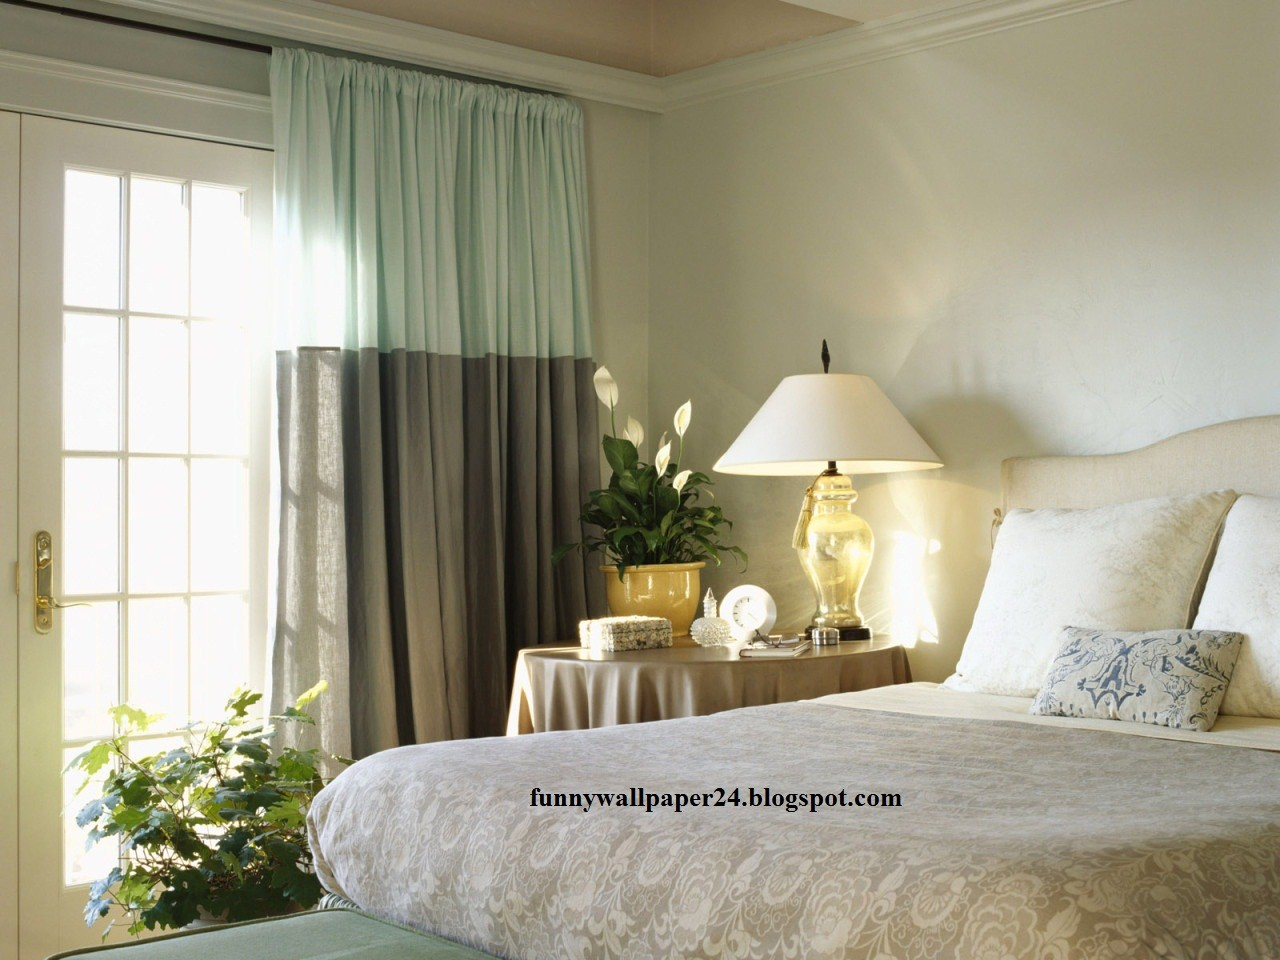 Wallpapers For A Bedroom 3d Bedroom Wallpaper Design A Bedroom Blog Art Designs